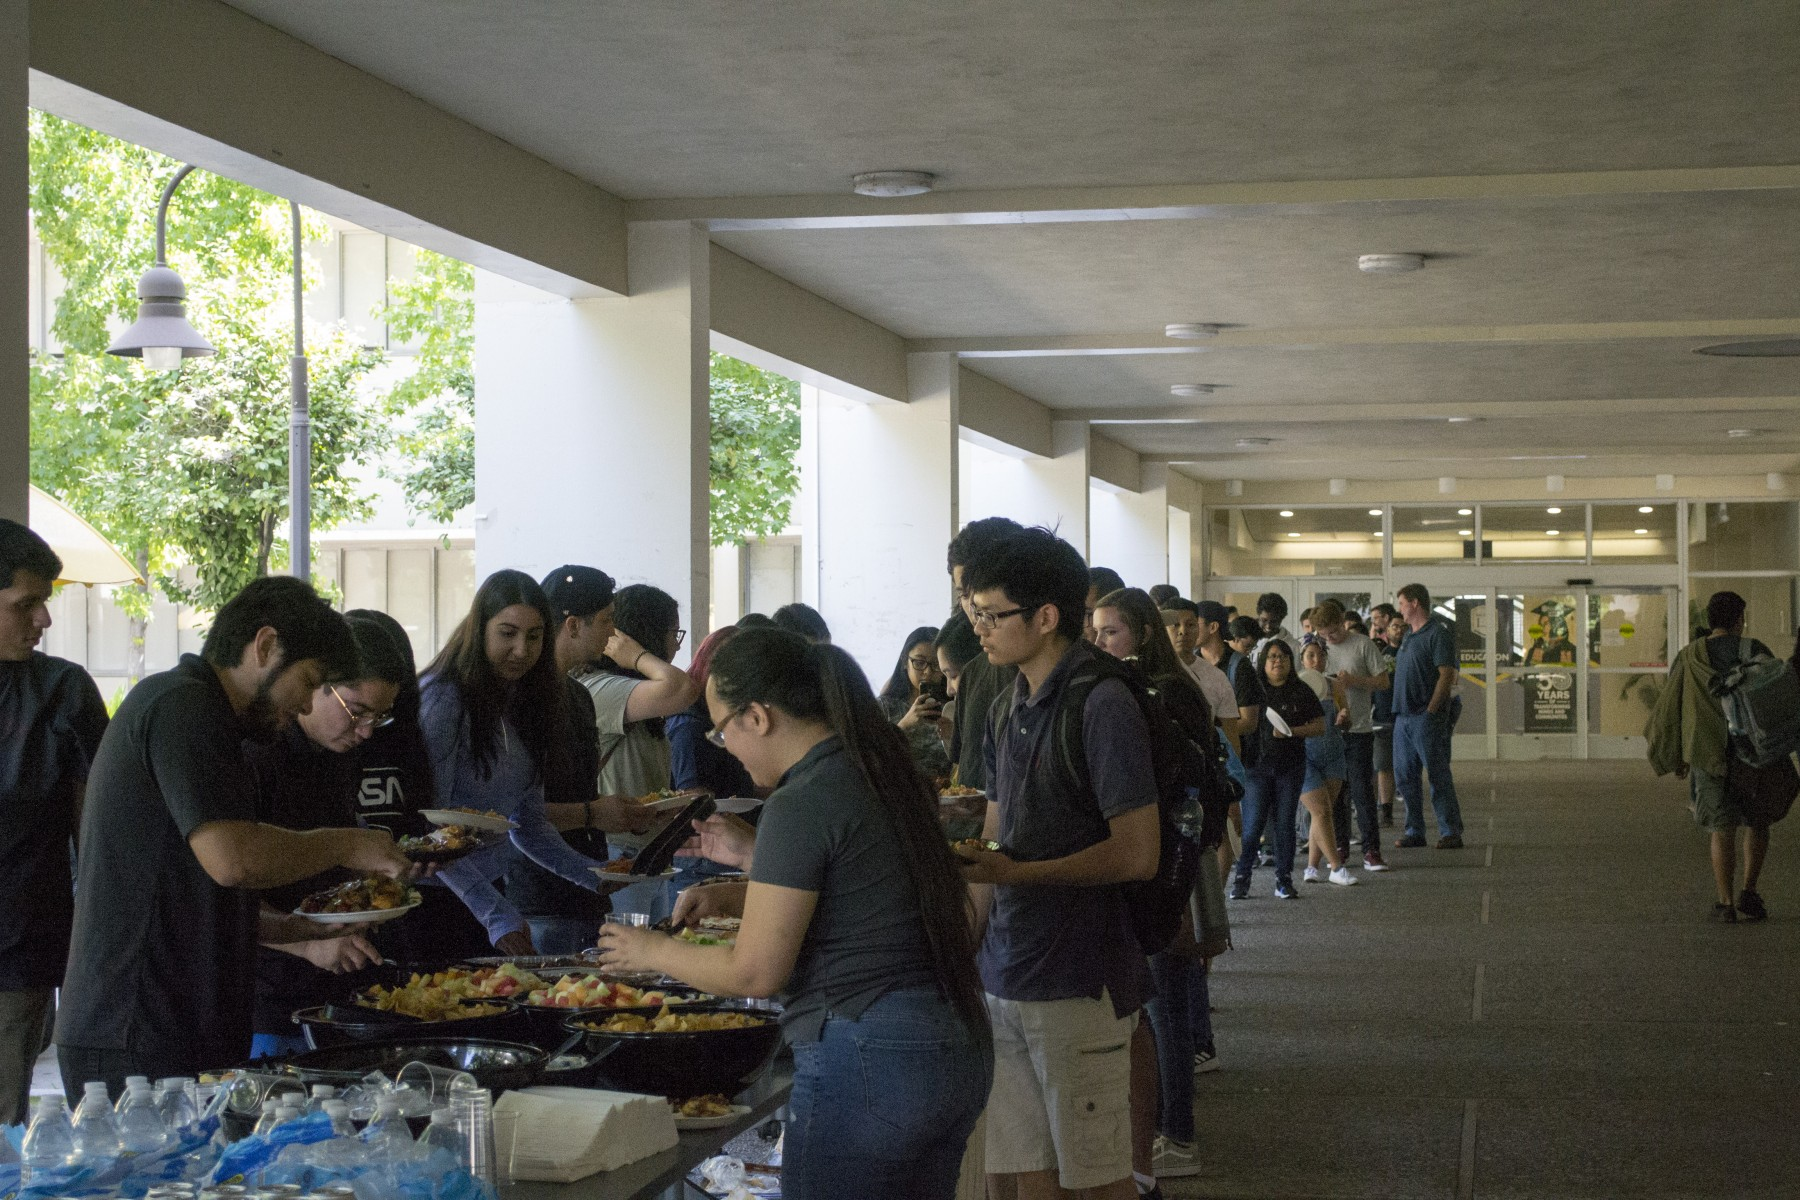 DIRECT-STEM students lined up for lunch at our kick-off event